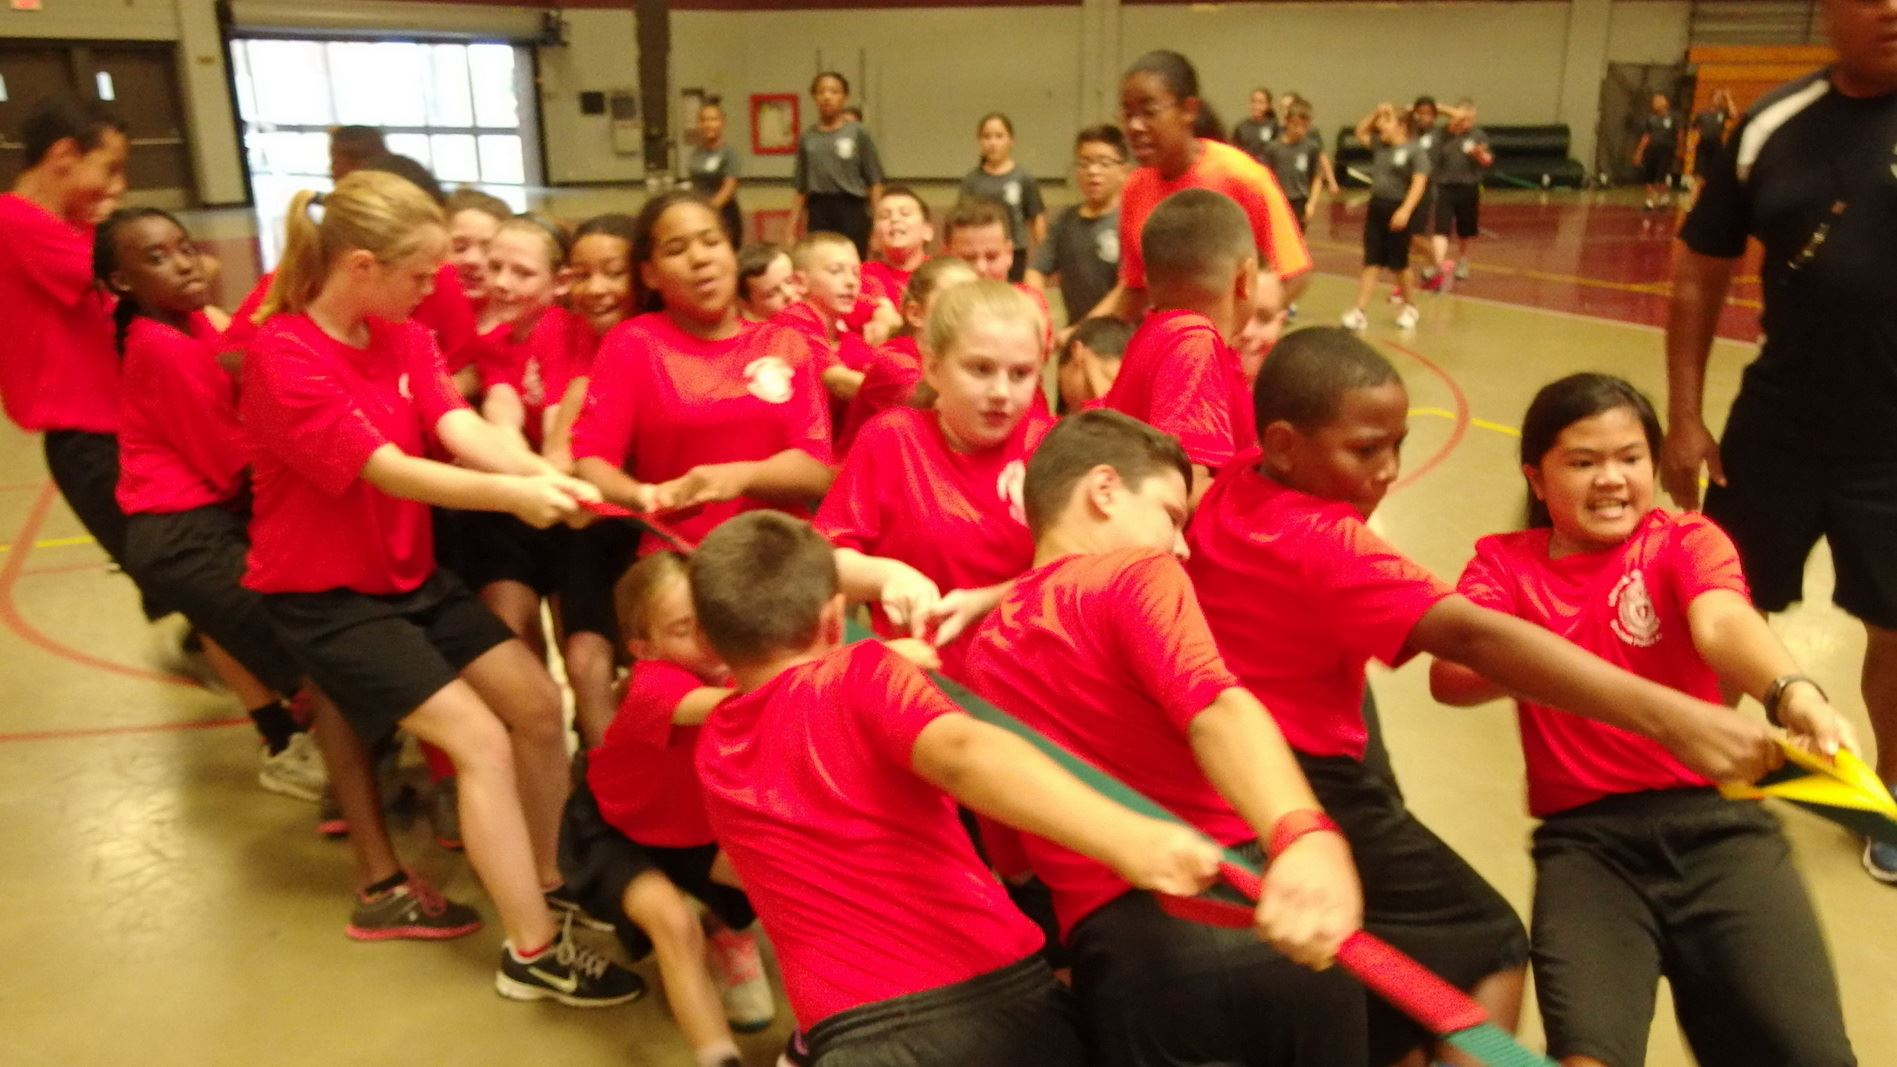 Tug of War During the Student Police Academy